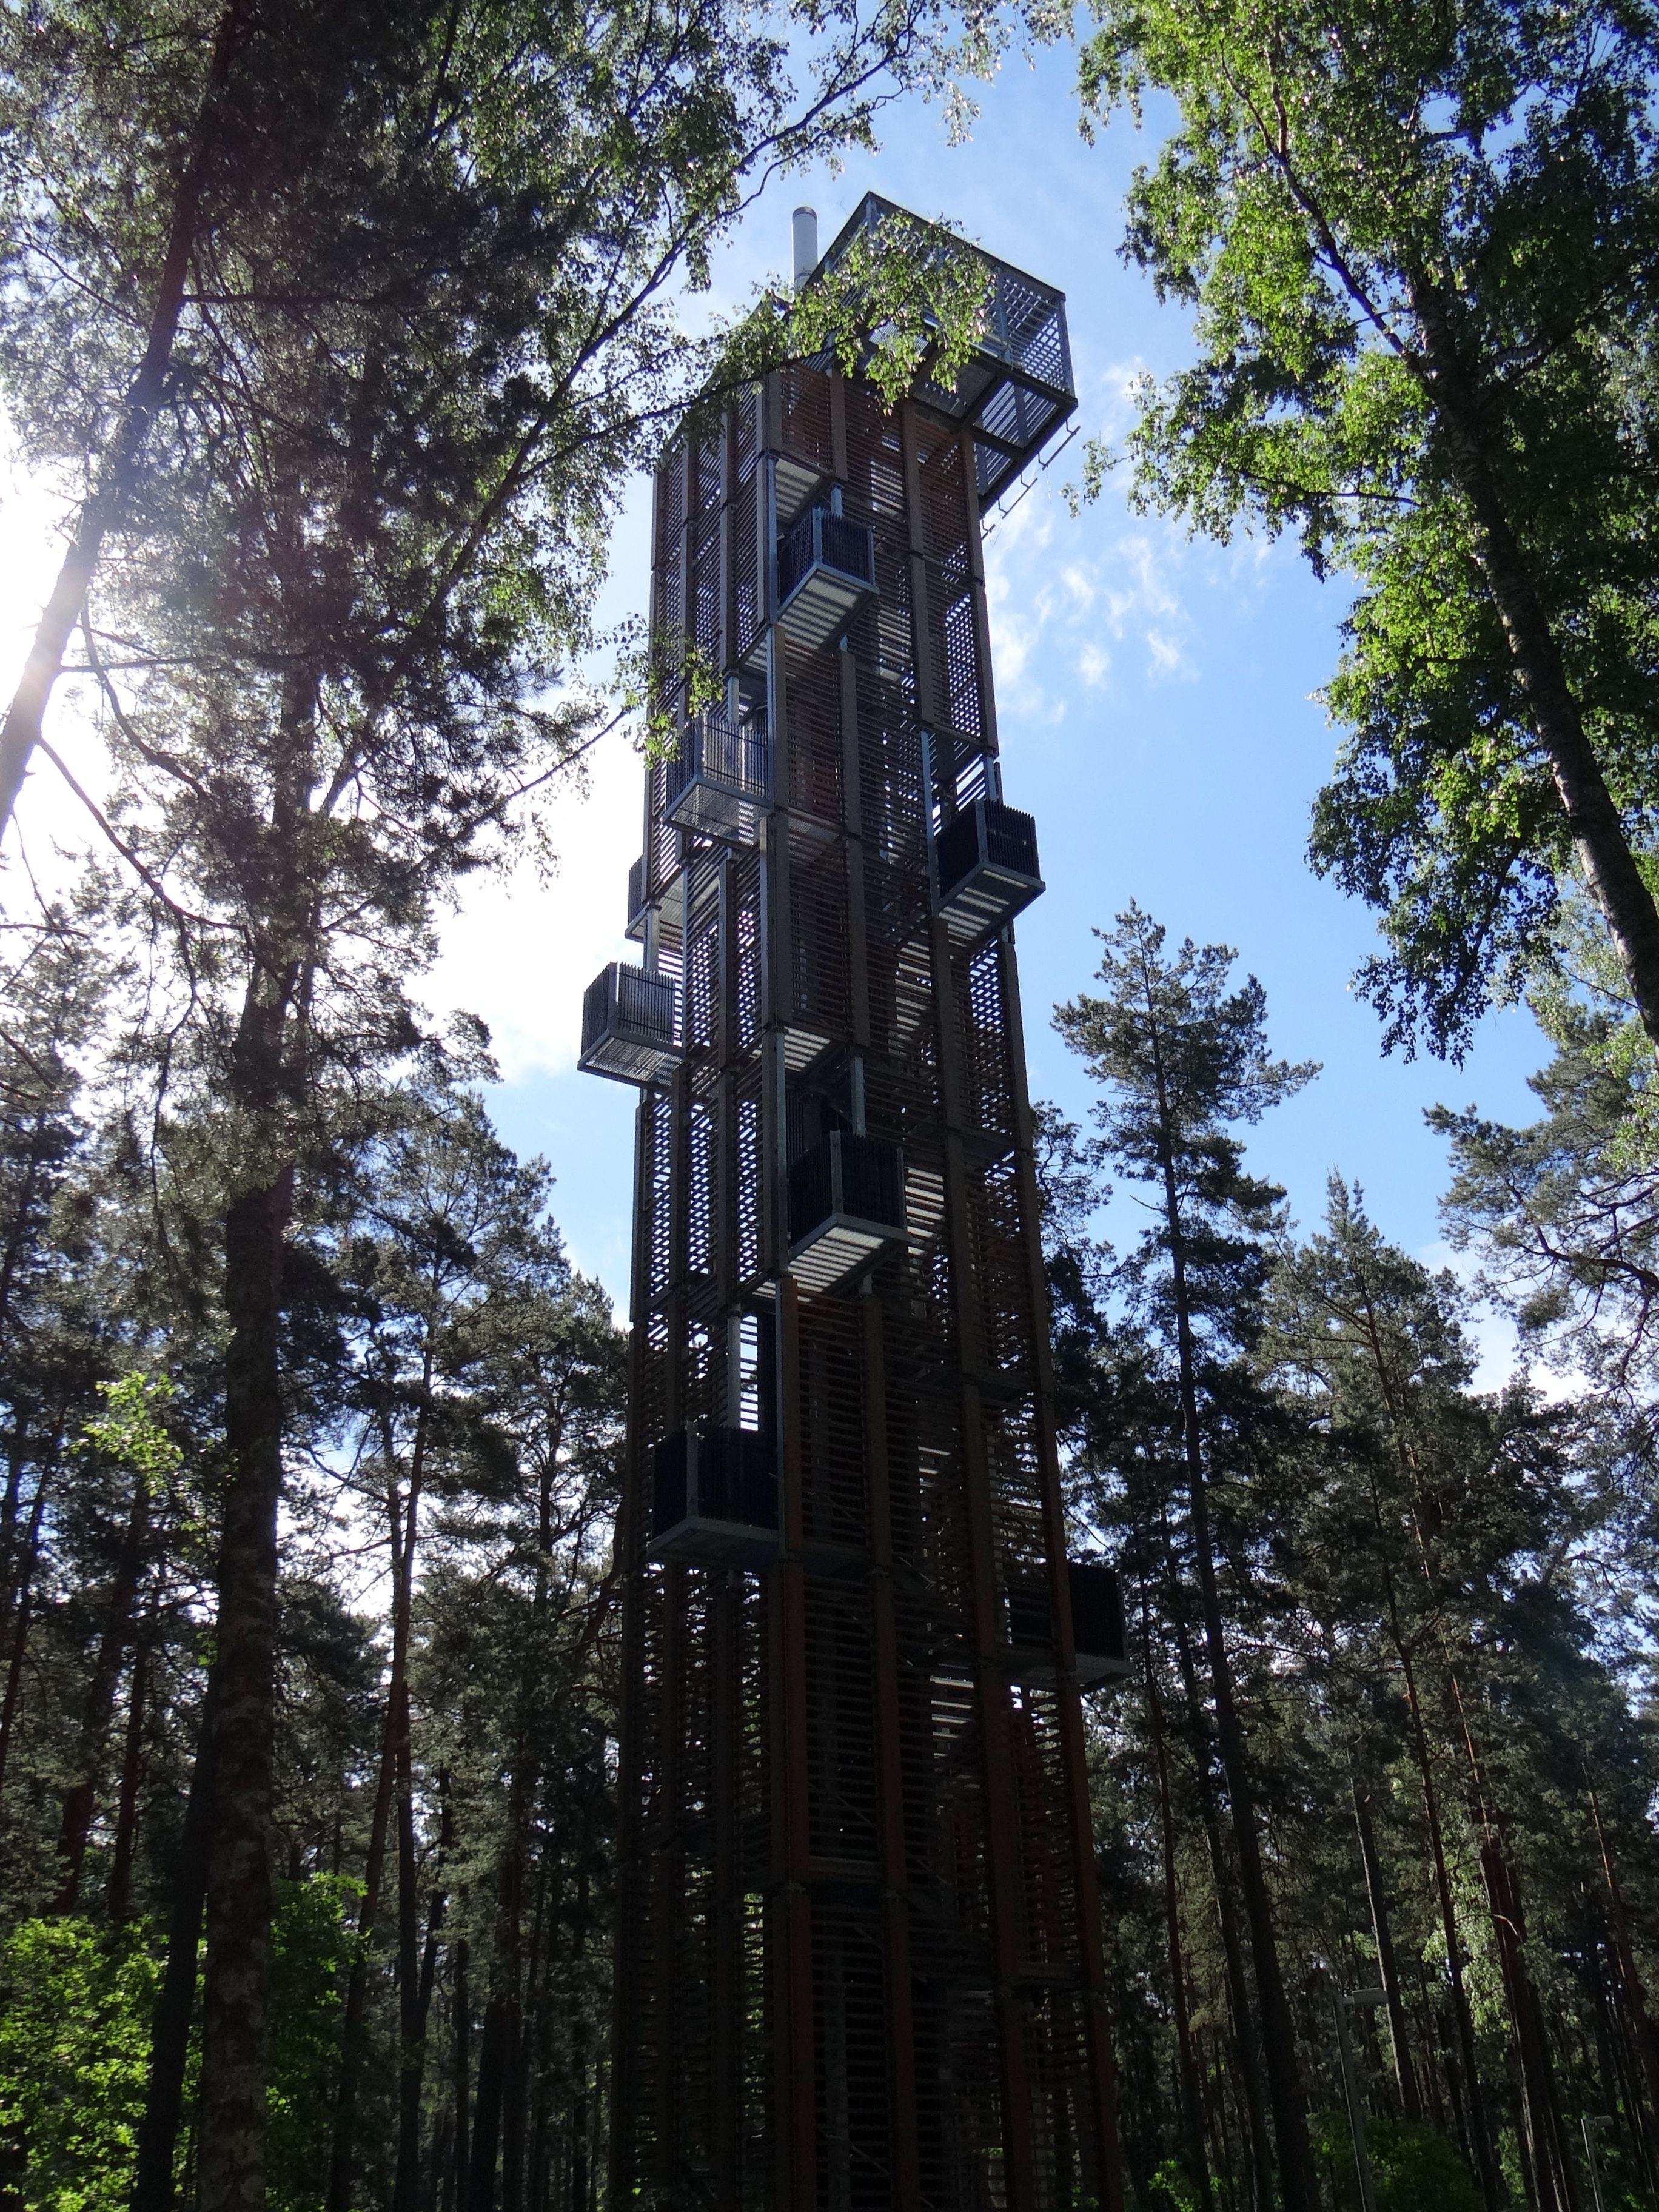 A tall metal tower with multiple staircases surrounded by trees